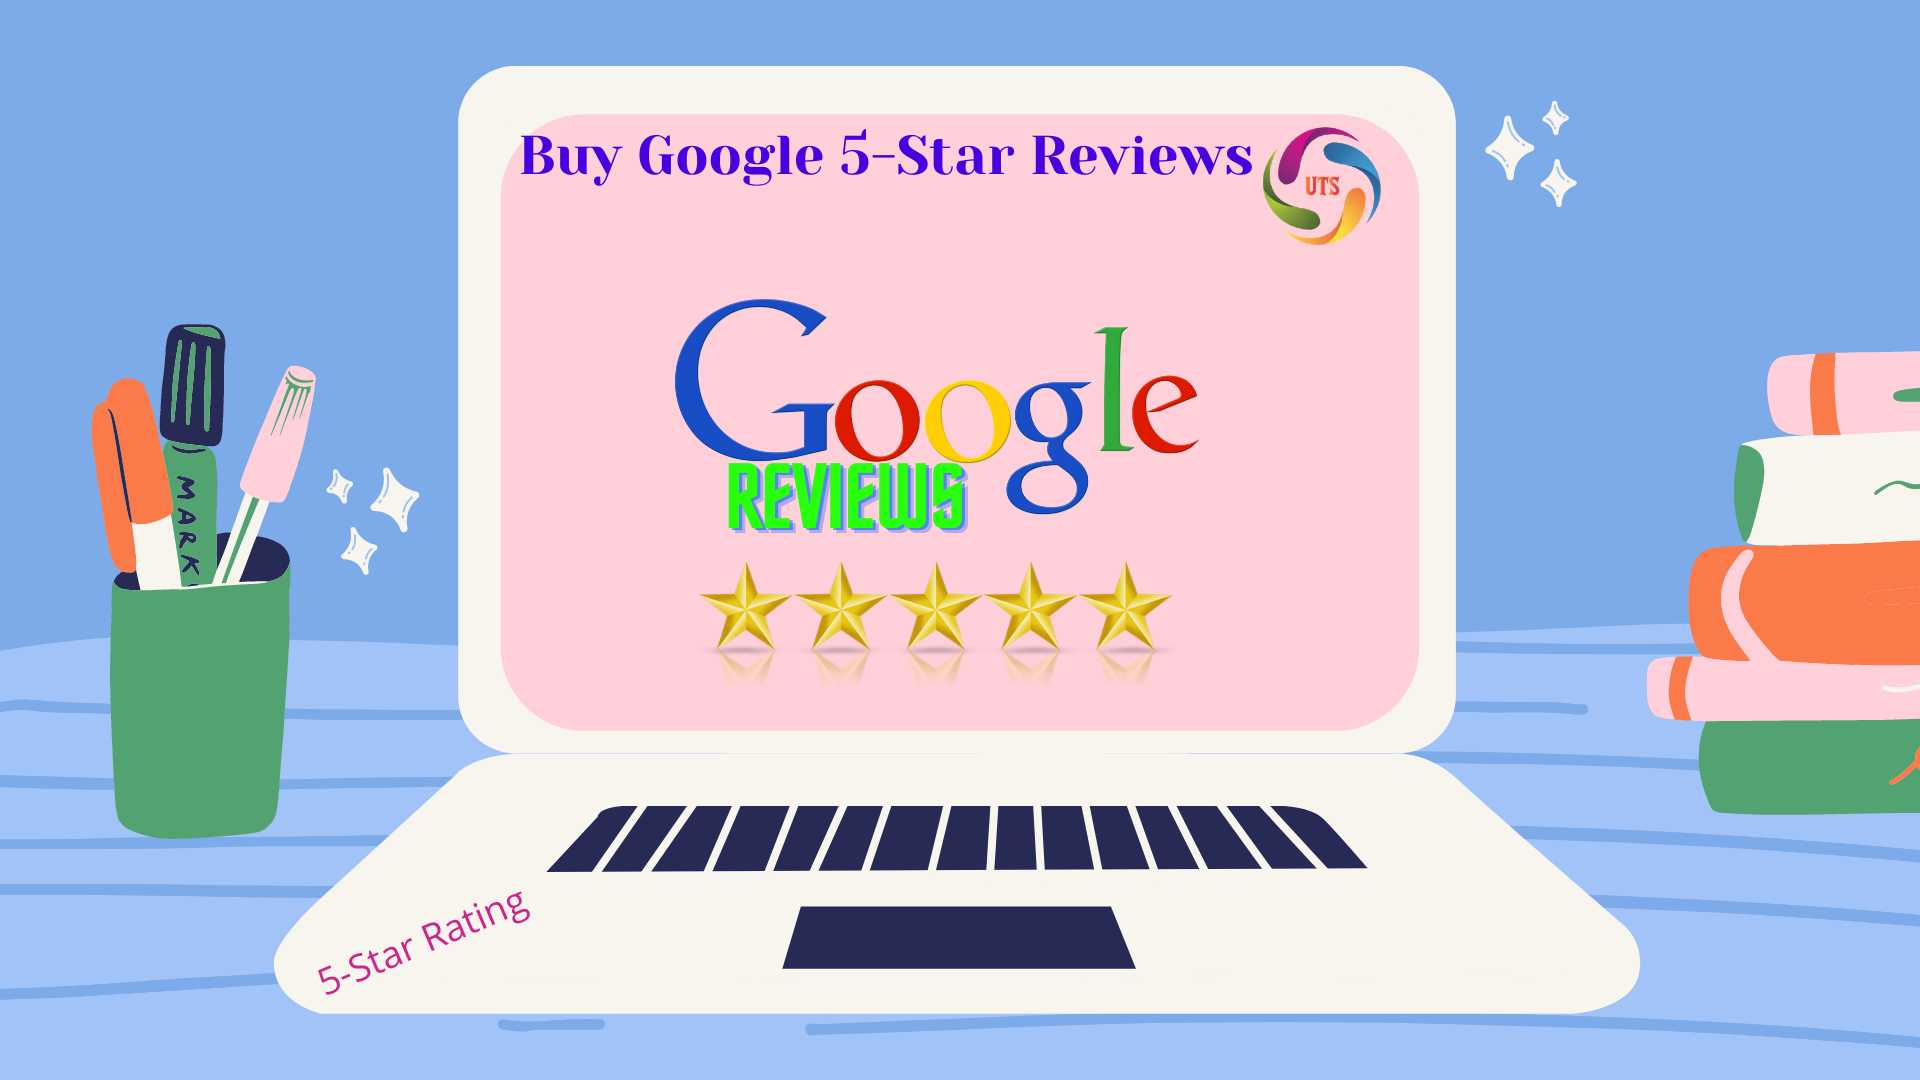 Want To Take Down The Bad Reviews? Try Buy Reviews Offers!